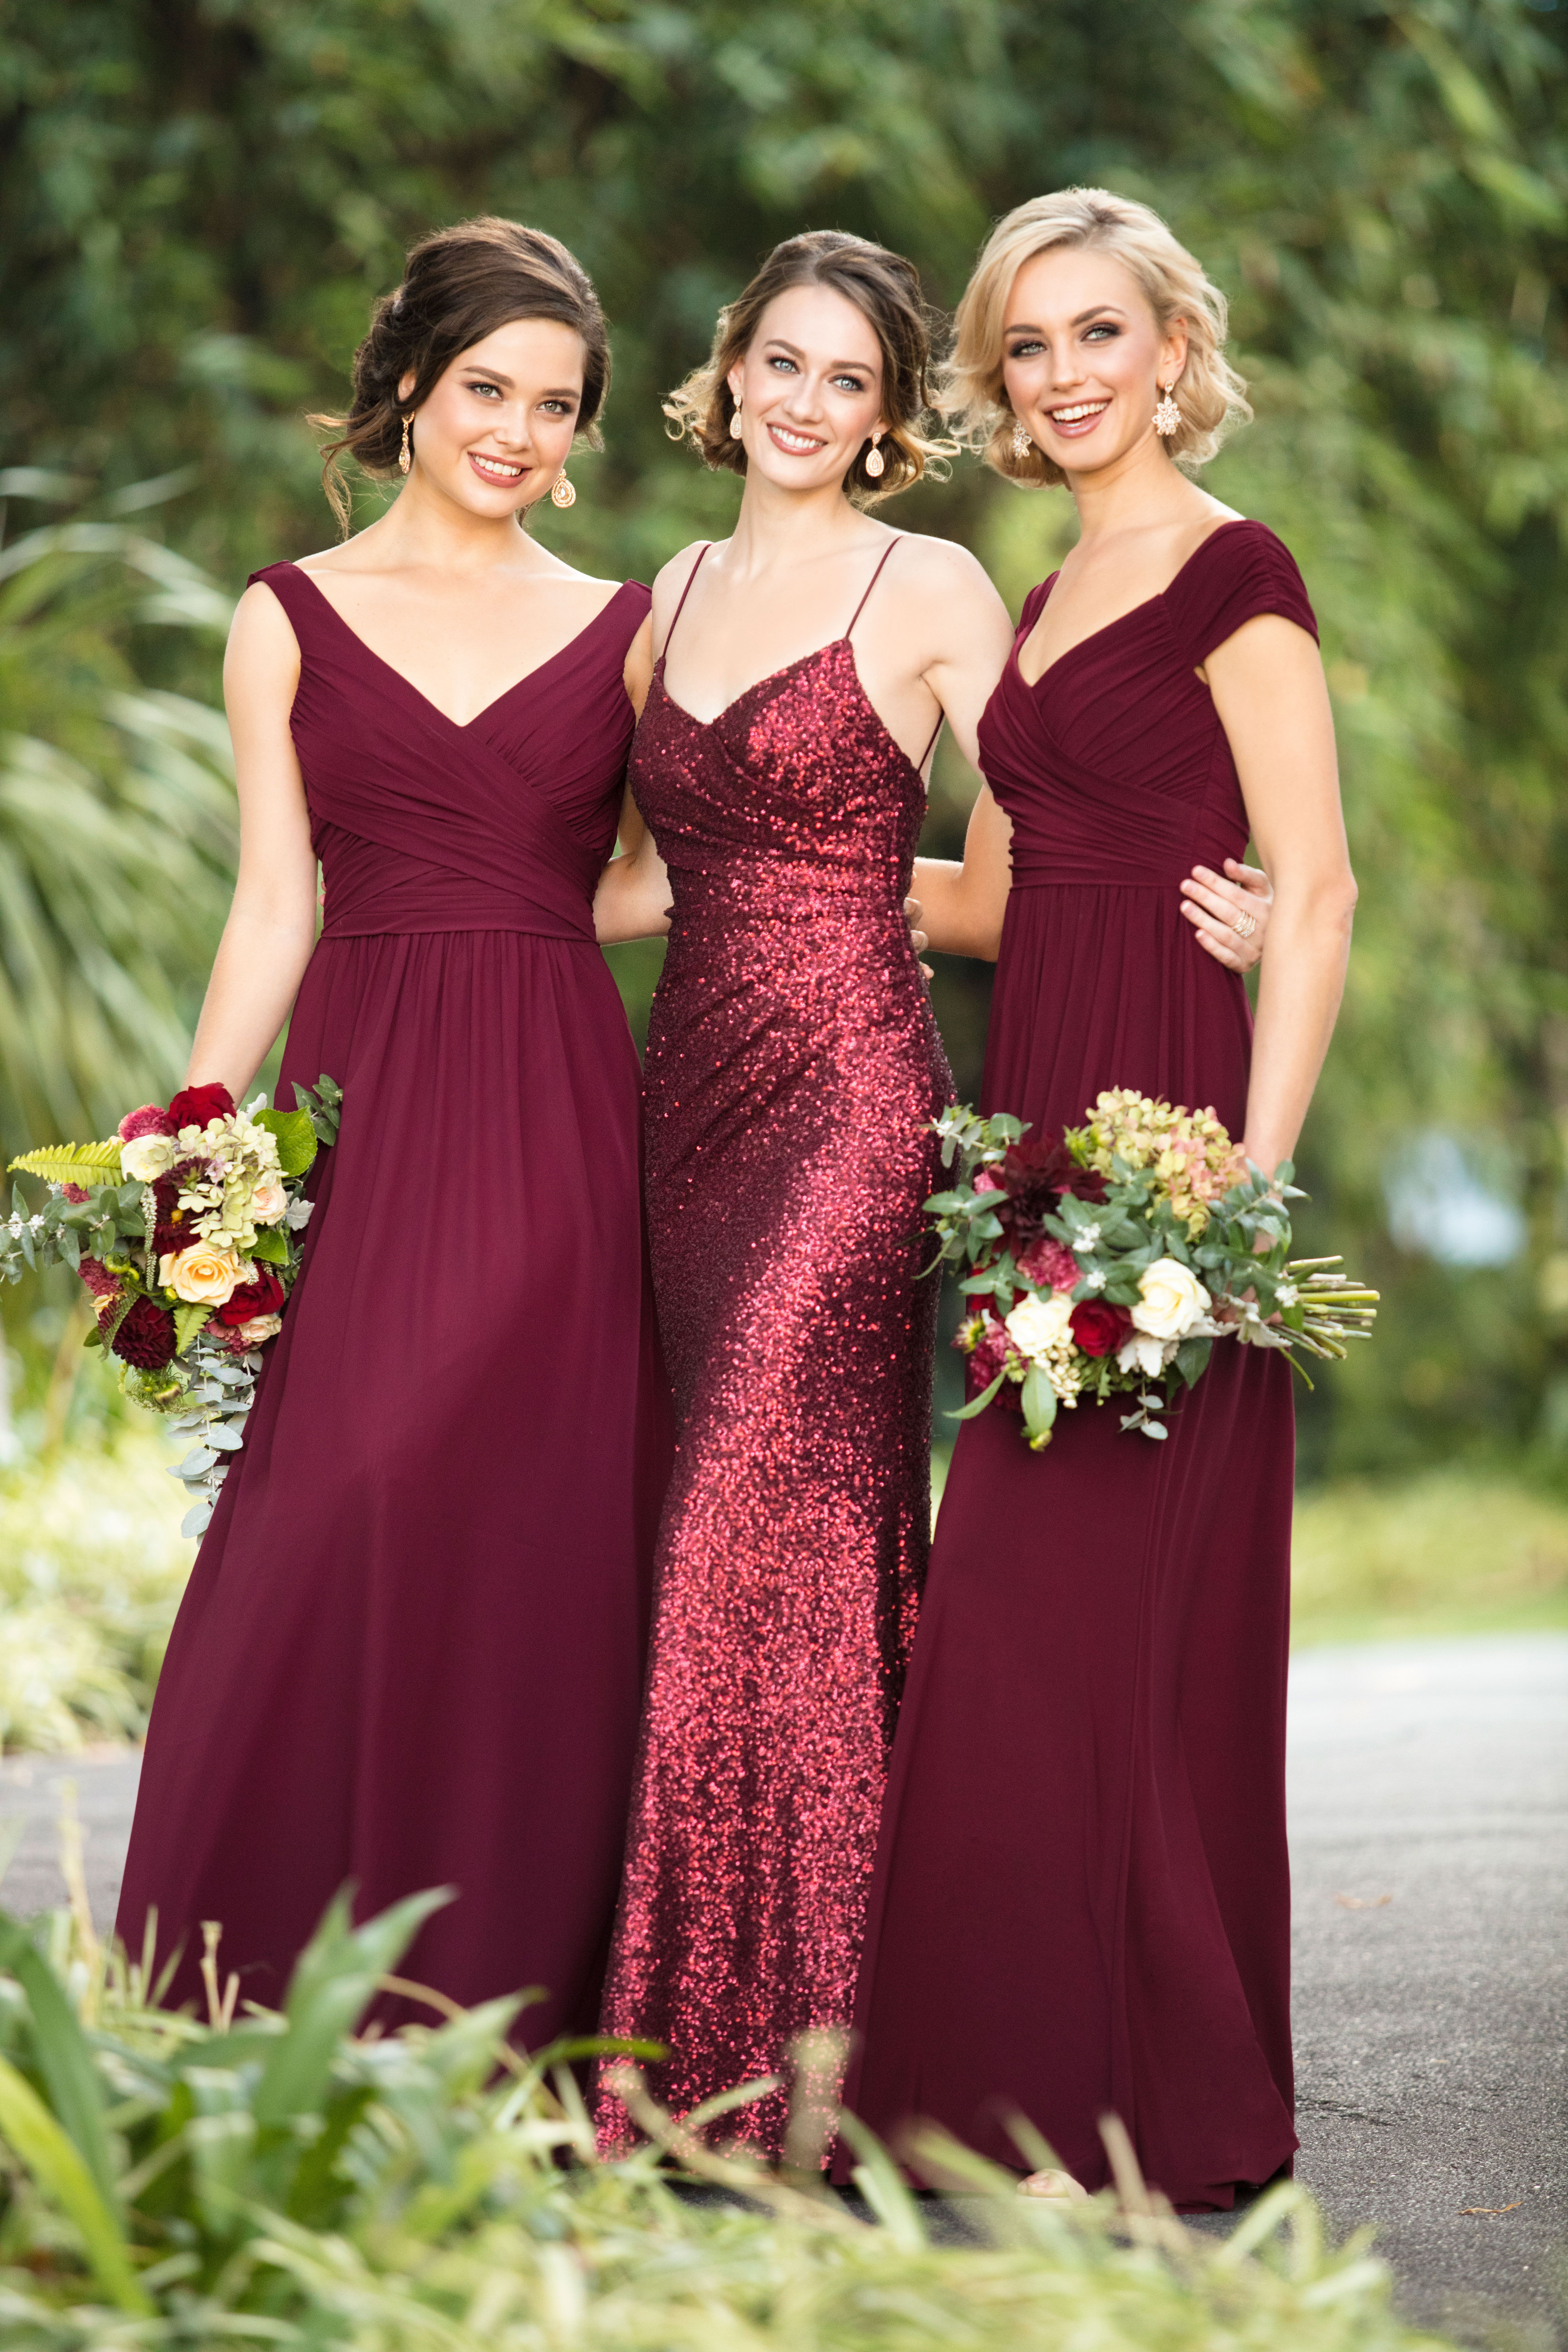 Martha Stewart Weddings - Create a glam mix-and-match bridesmaids look with  crimson matte sequins and luxe burgundy gowns from Sorella Vita. 5878a9c5d05e